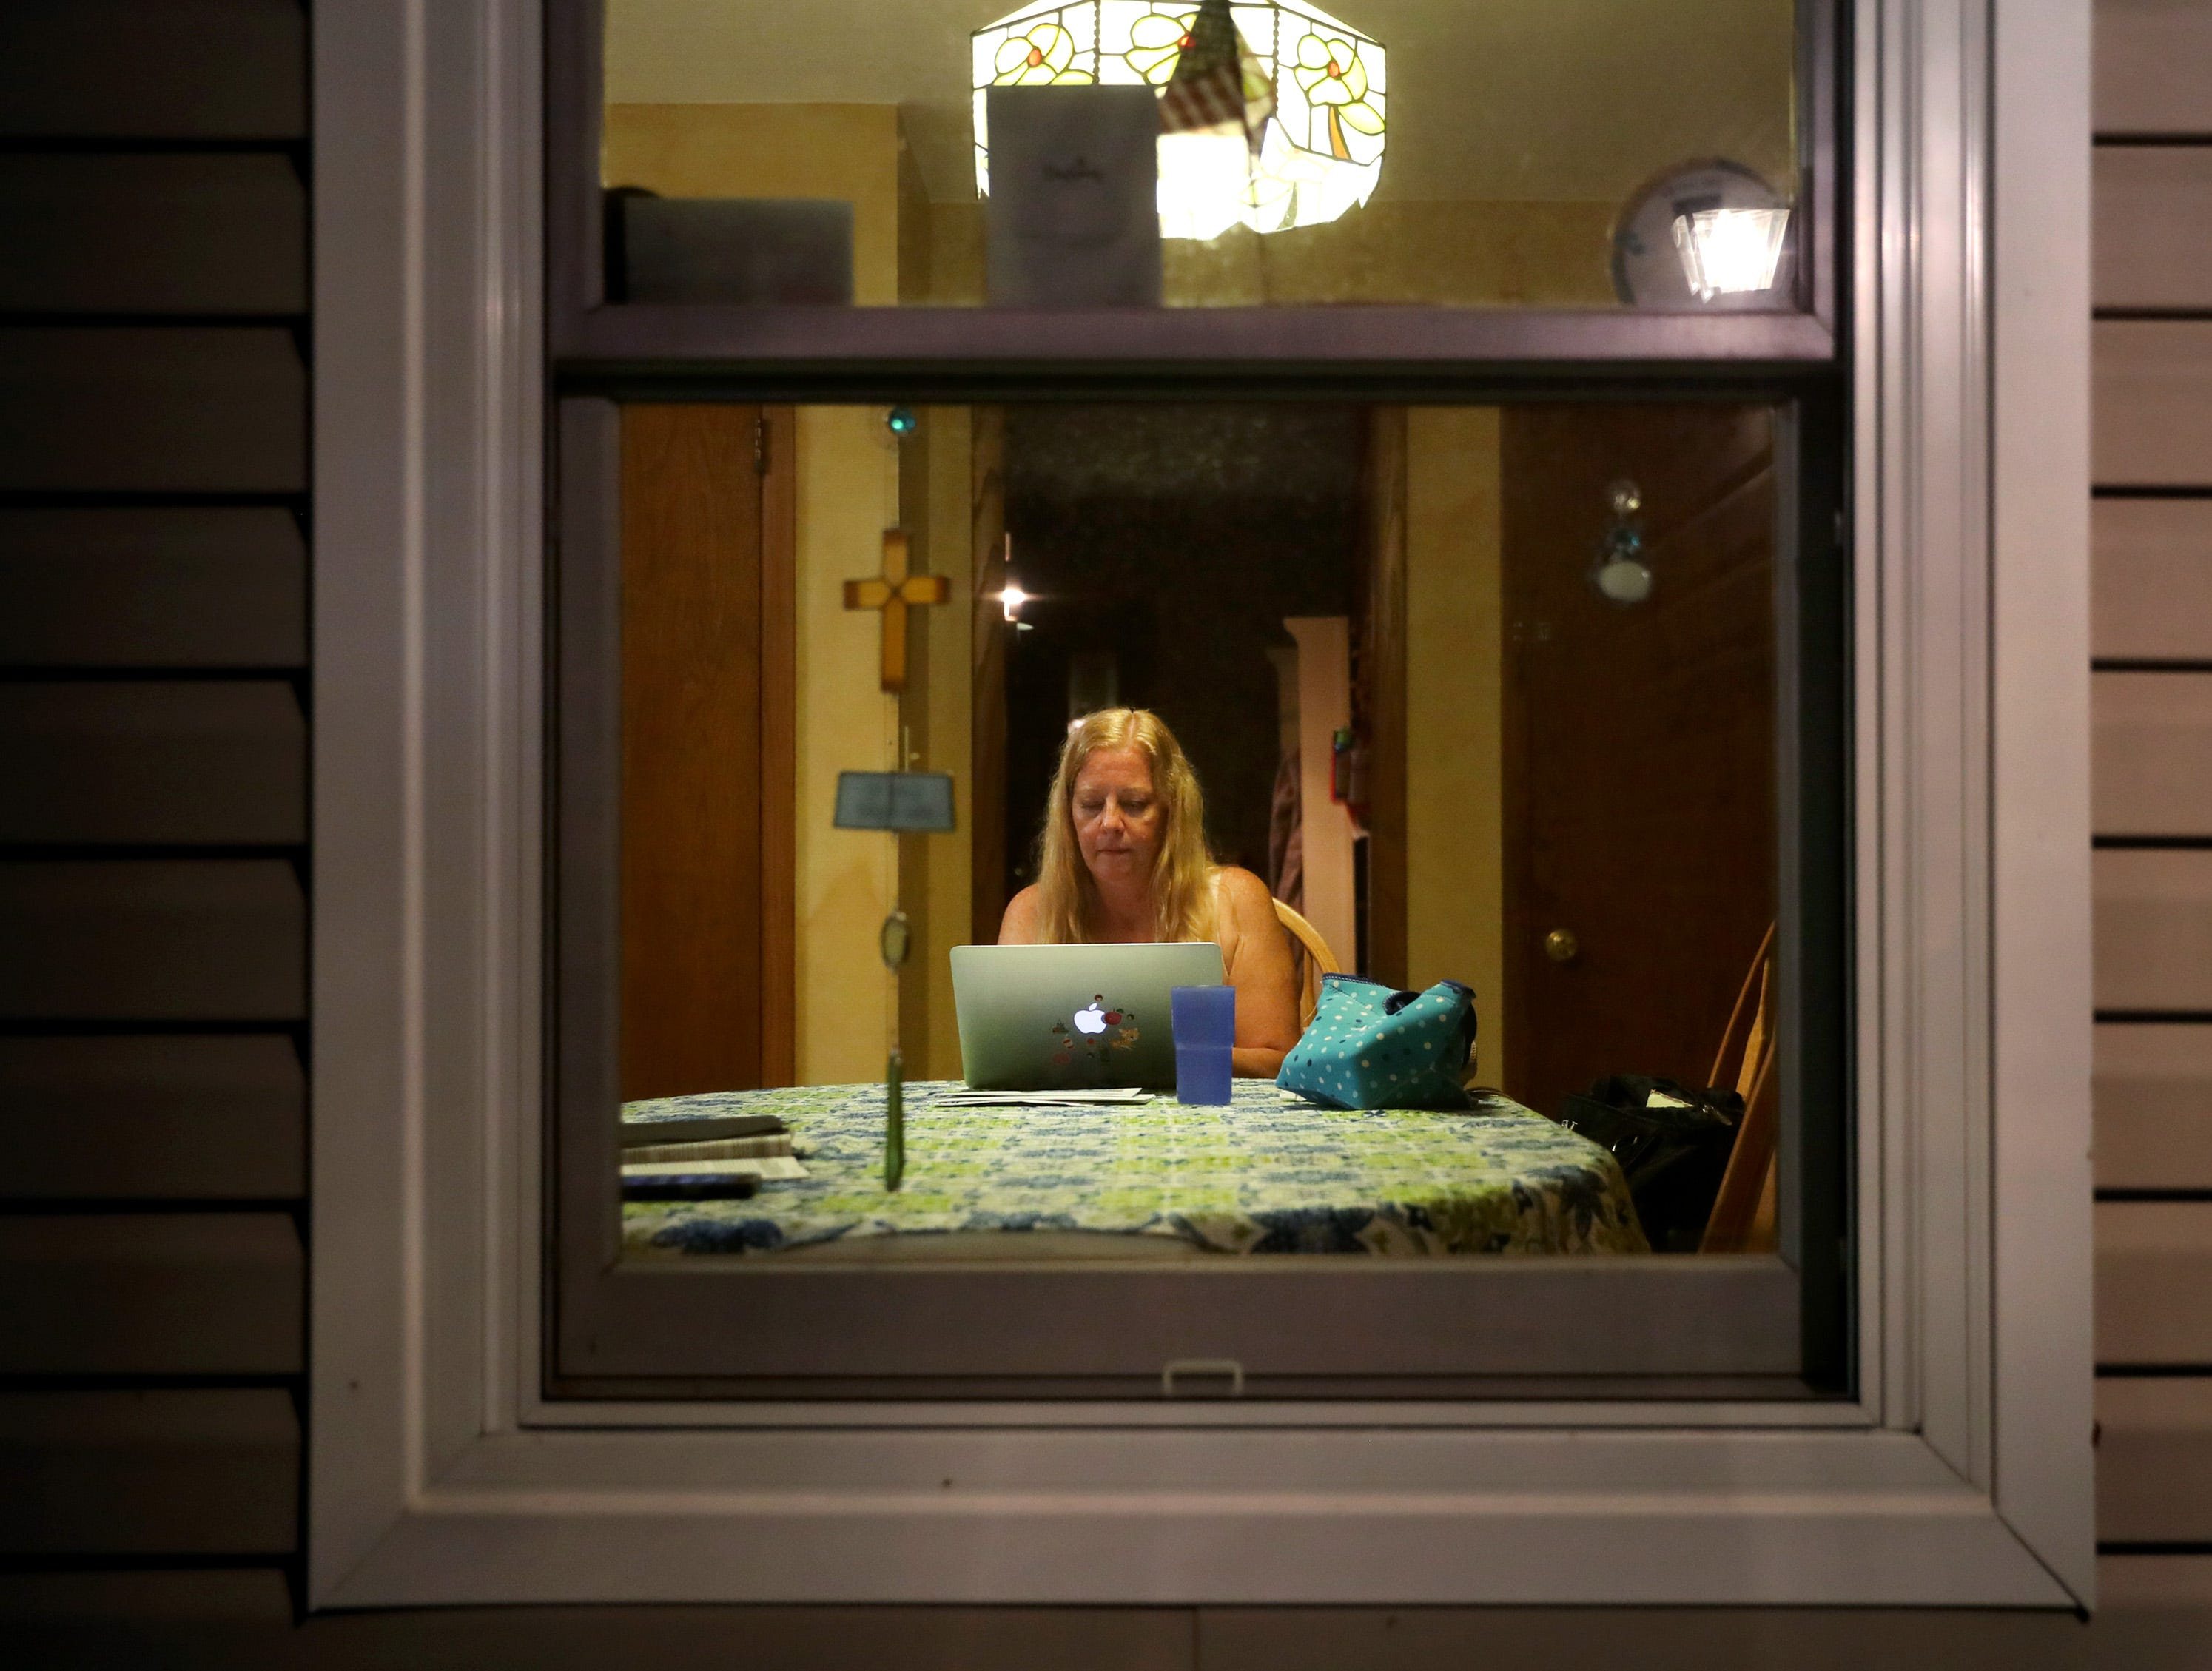 Maripat Franke, a special education teacher at Neenah High School currently enrolled in the Residency In Teacher Education 2.0 program at CESA 6, can be seen through her kitchen window checking emails after finishing her workday and teaching a baton twirling class at the Neenah/Menasha YMCA Monday, Sept. 17, 2018, in Neenah, Wis.